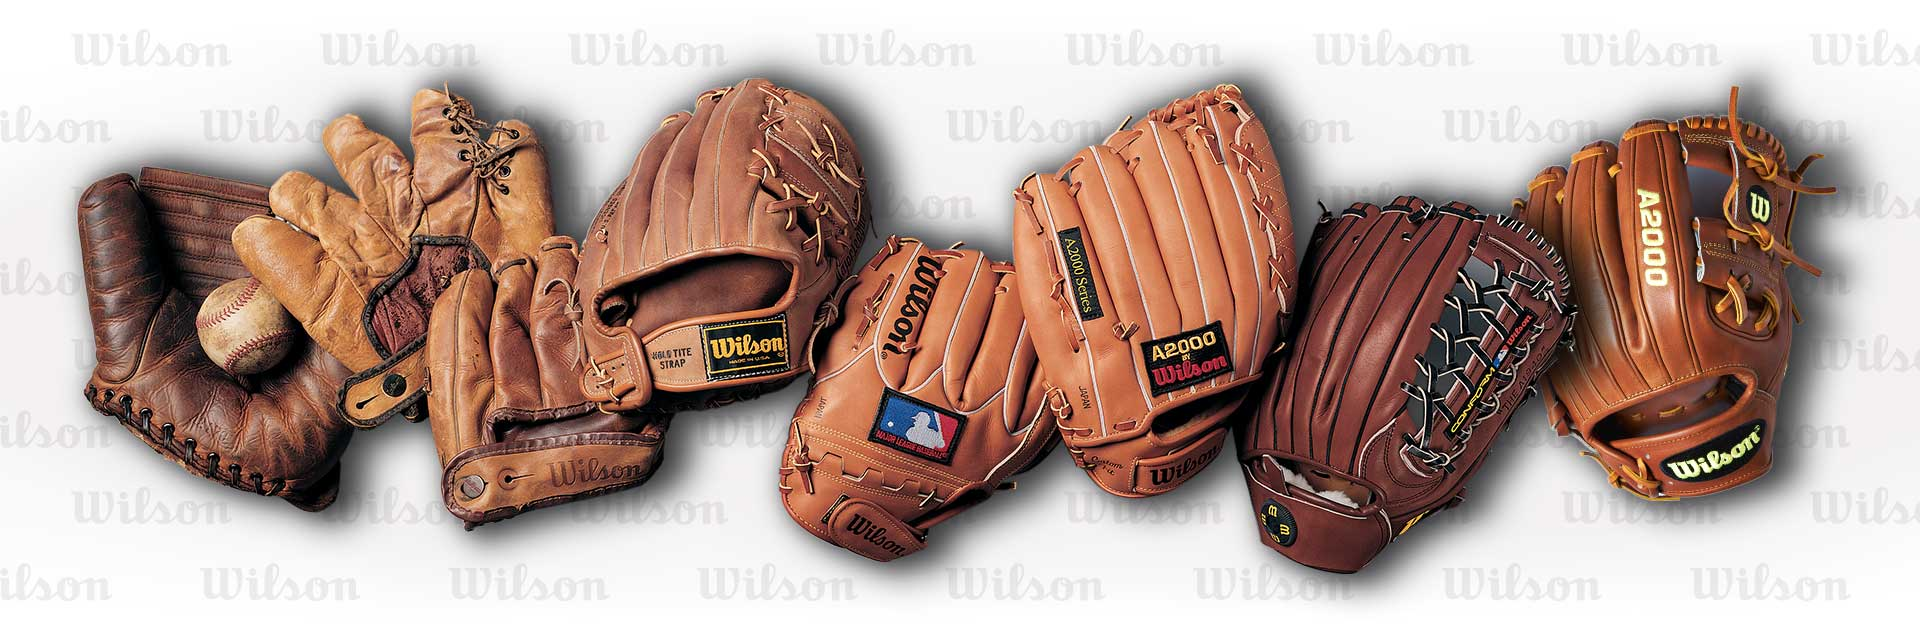 A line of eight gloves showing the evolution of Wilson ball gloves over the years from the first model to the newest